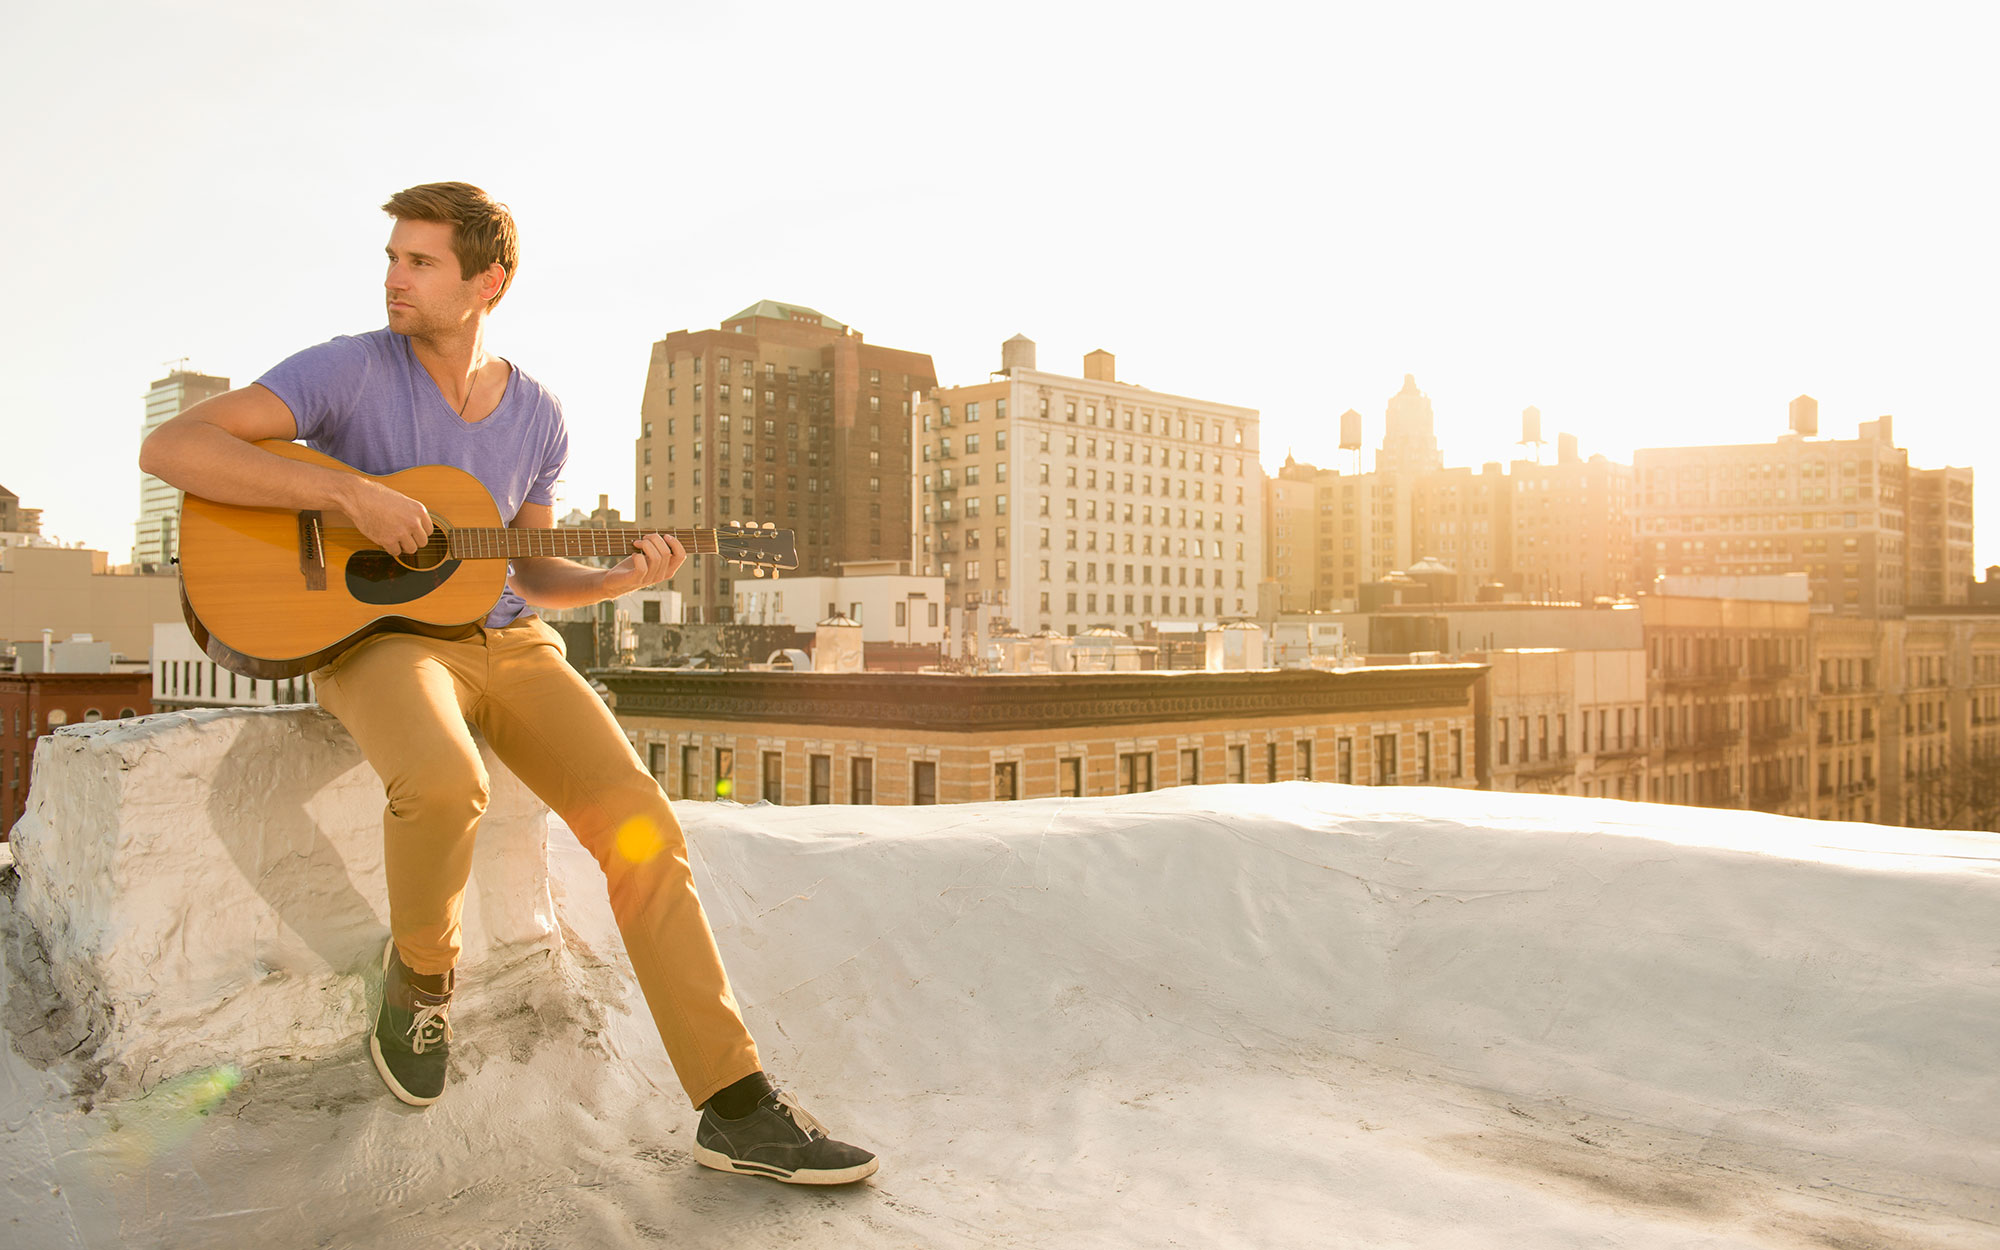 20 Secret Hotel Amenities Even the Concierge Doesn't Know About: Rooftop Guitar Lessons